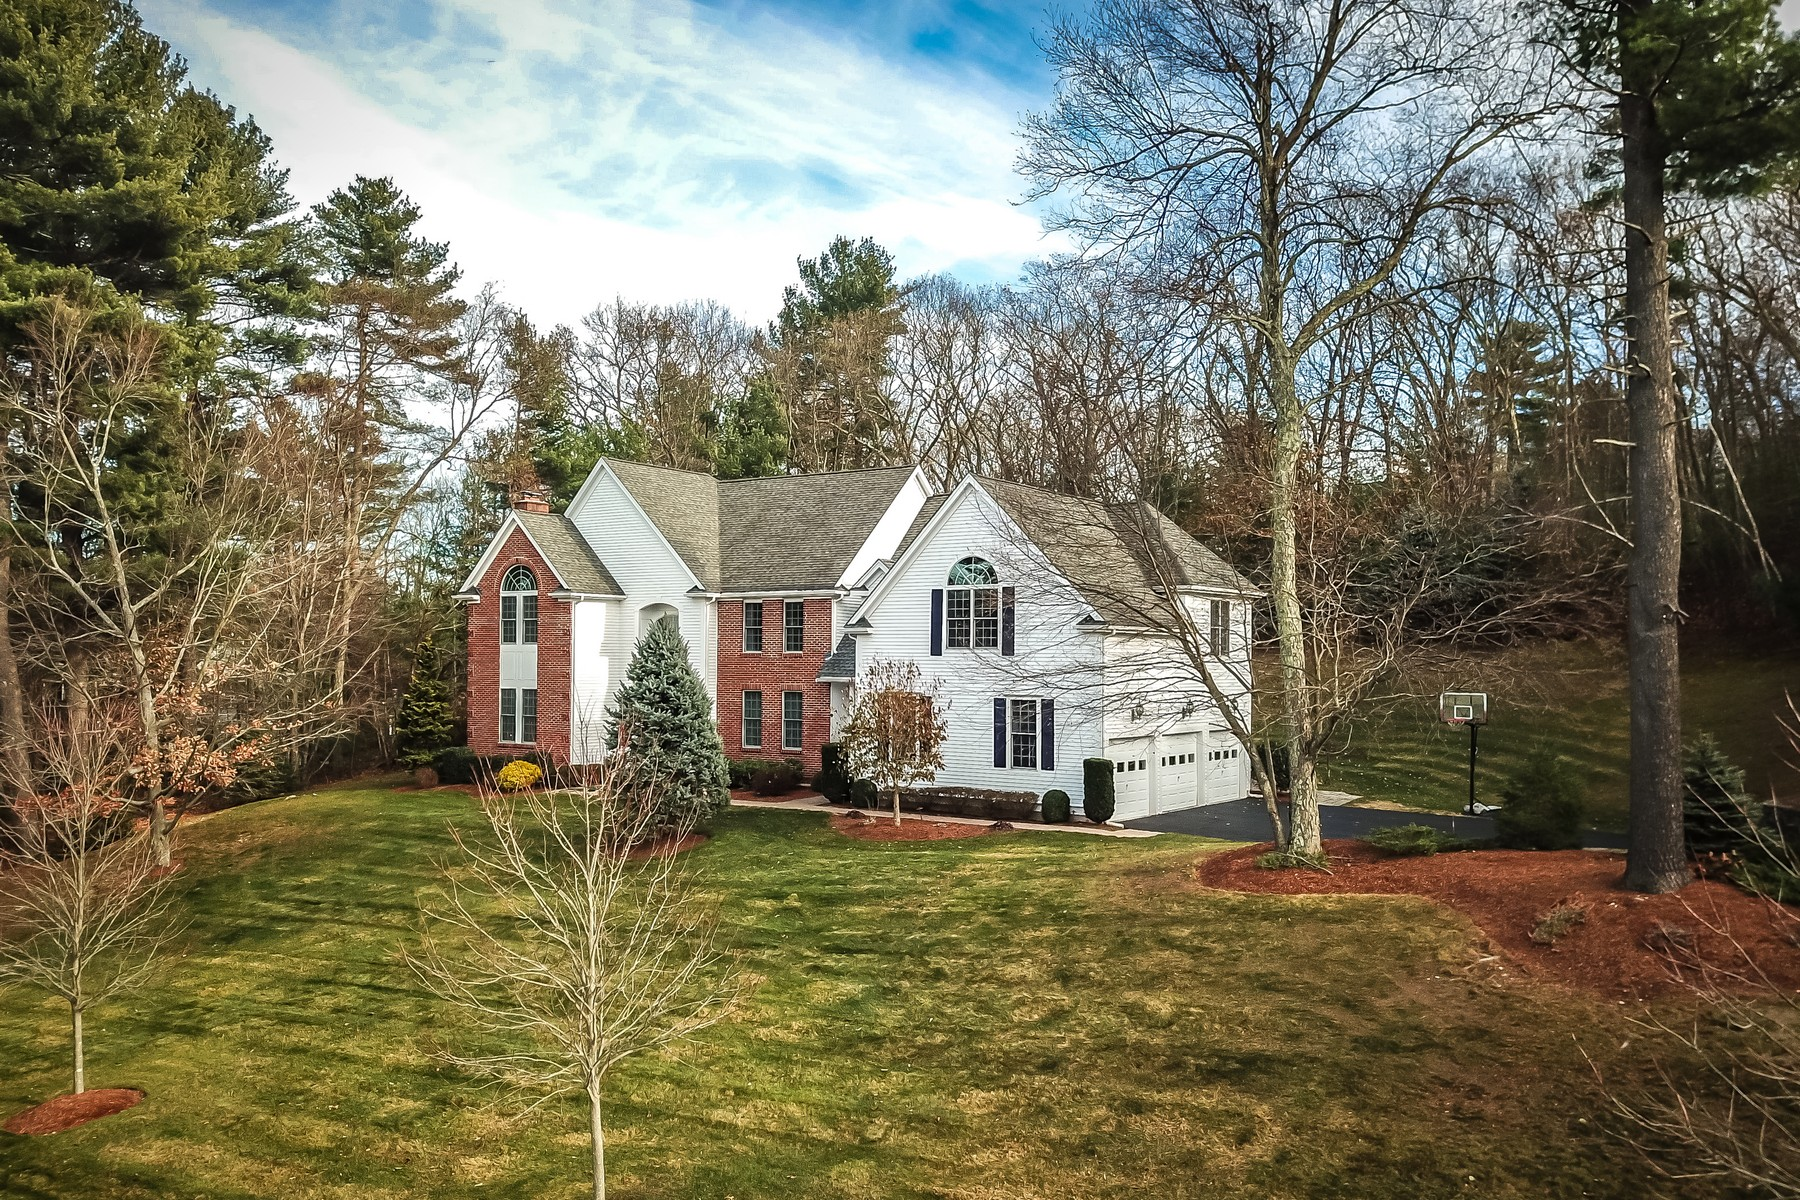 Single Family Homes for Active at Exquisite Colonial Home 12 Bertis Adams Way Westborough, Massachusetts 01581 United States